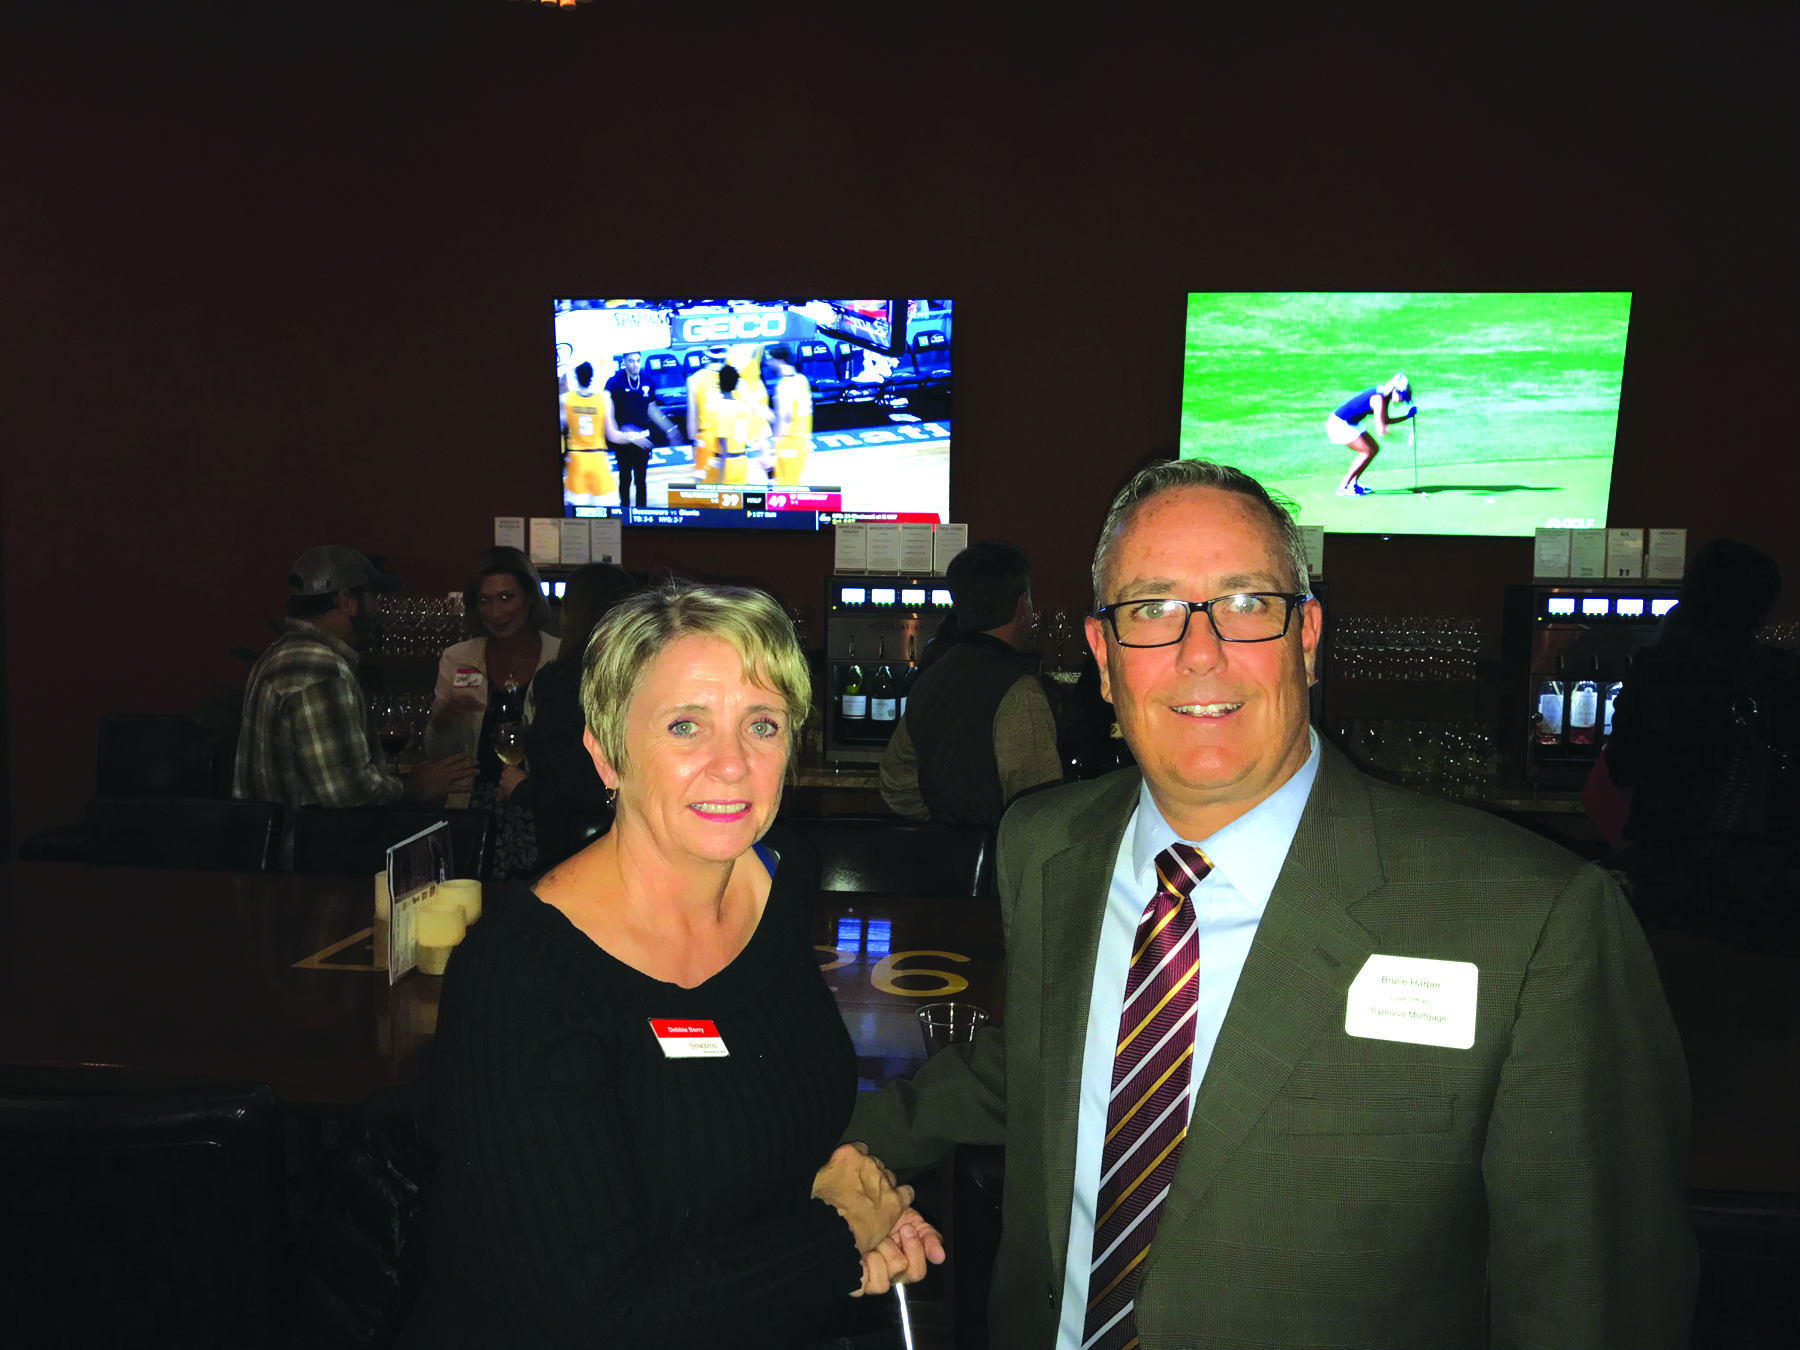 Debbie Berry and Bruce Harper of Synovus Bank and Mortgage Company.